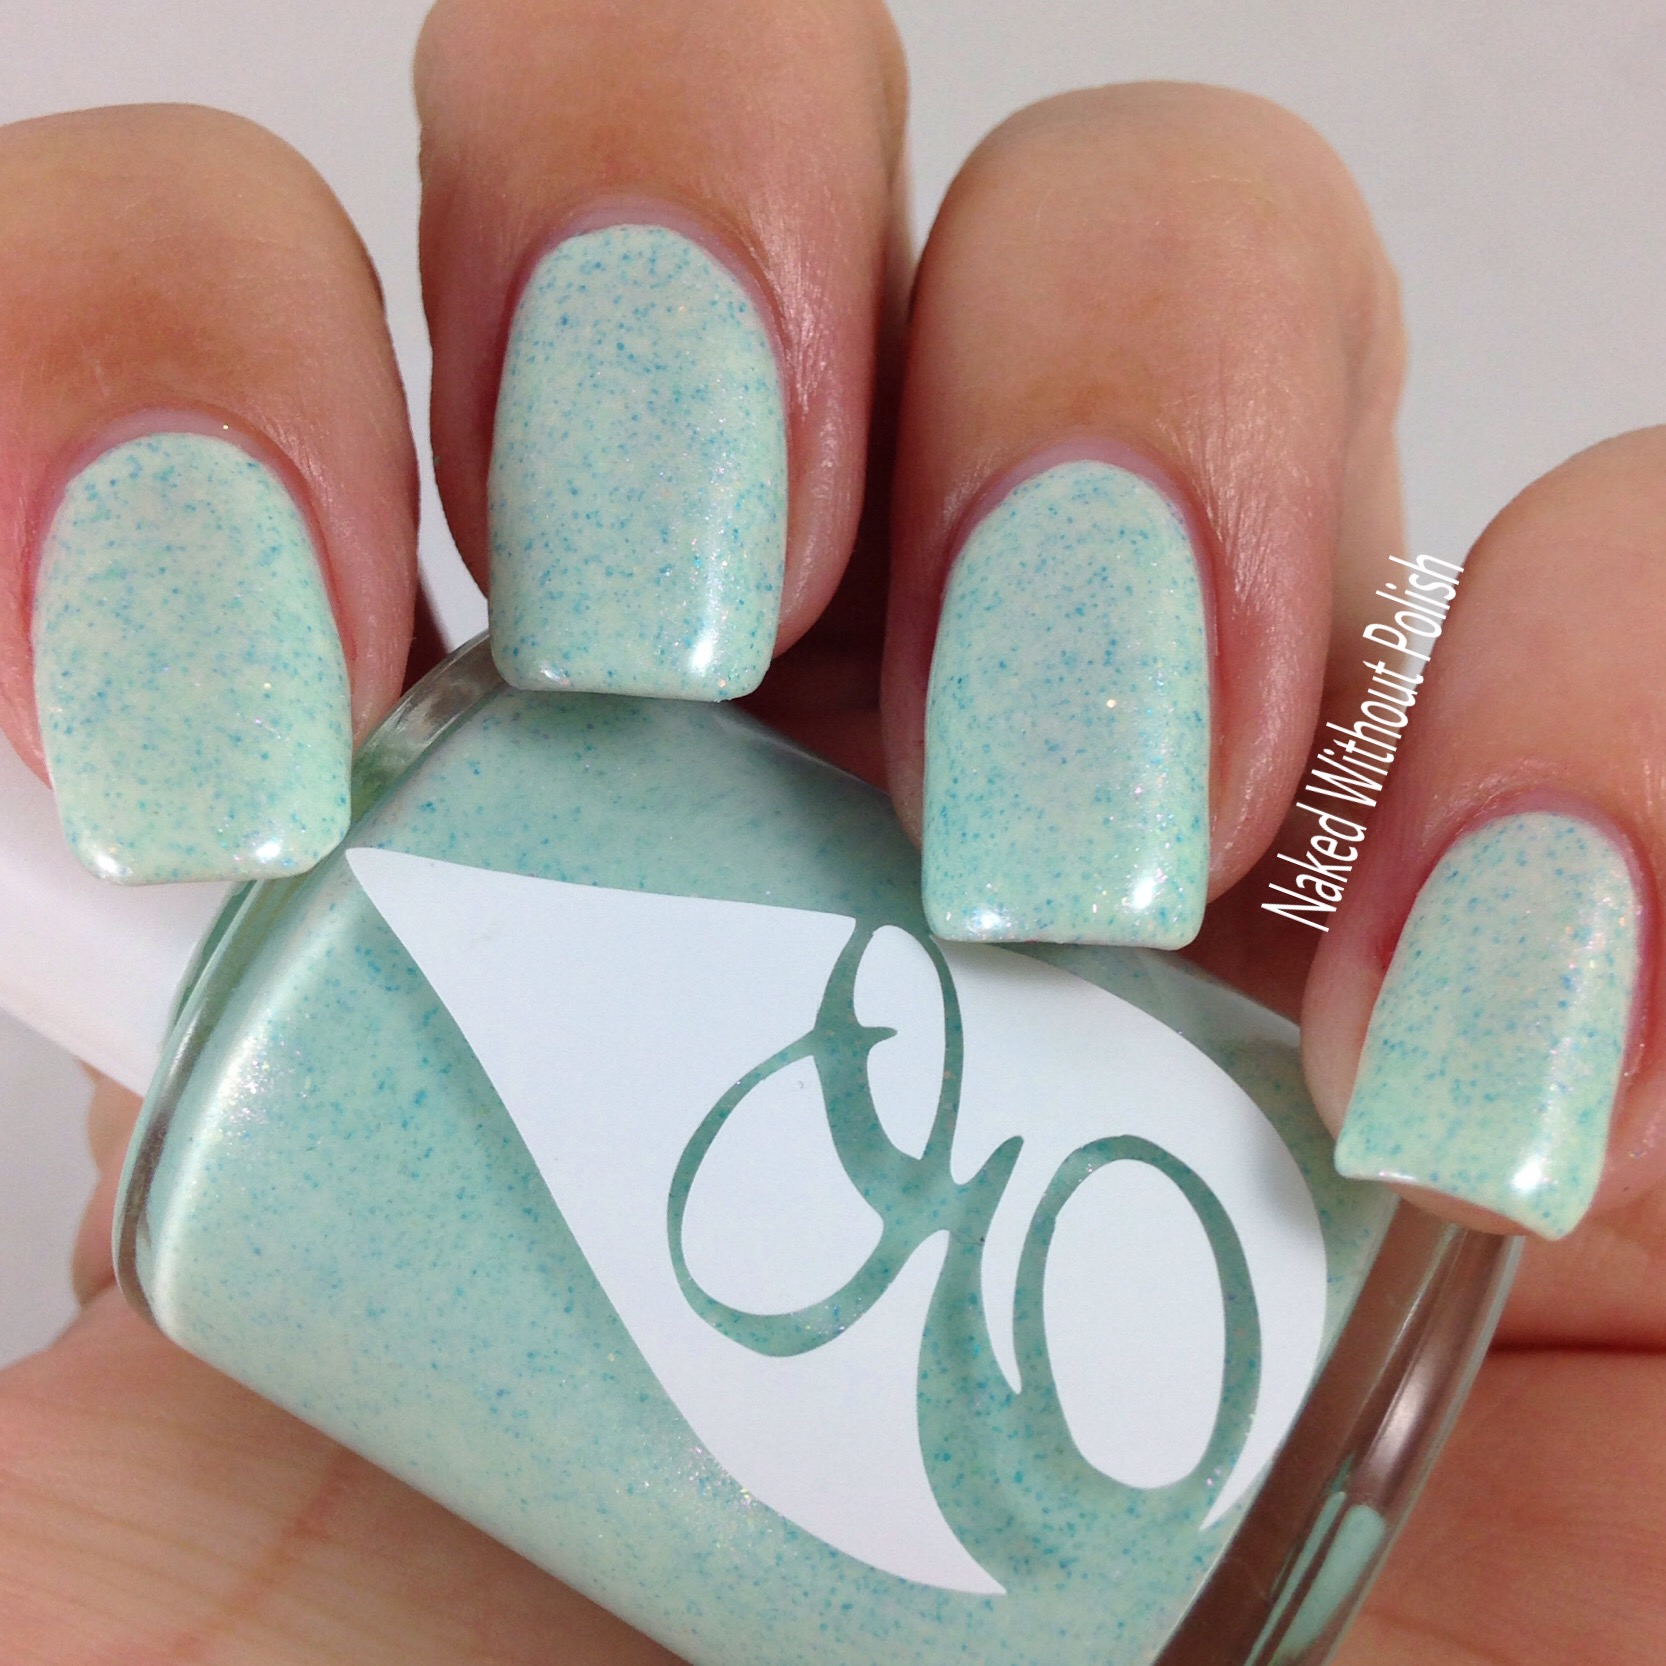 Envy-Lacquer-Seafoamin-Around-6